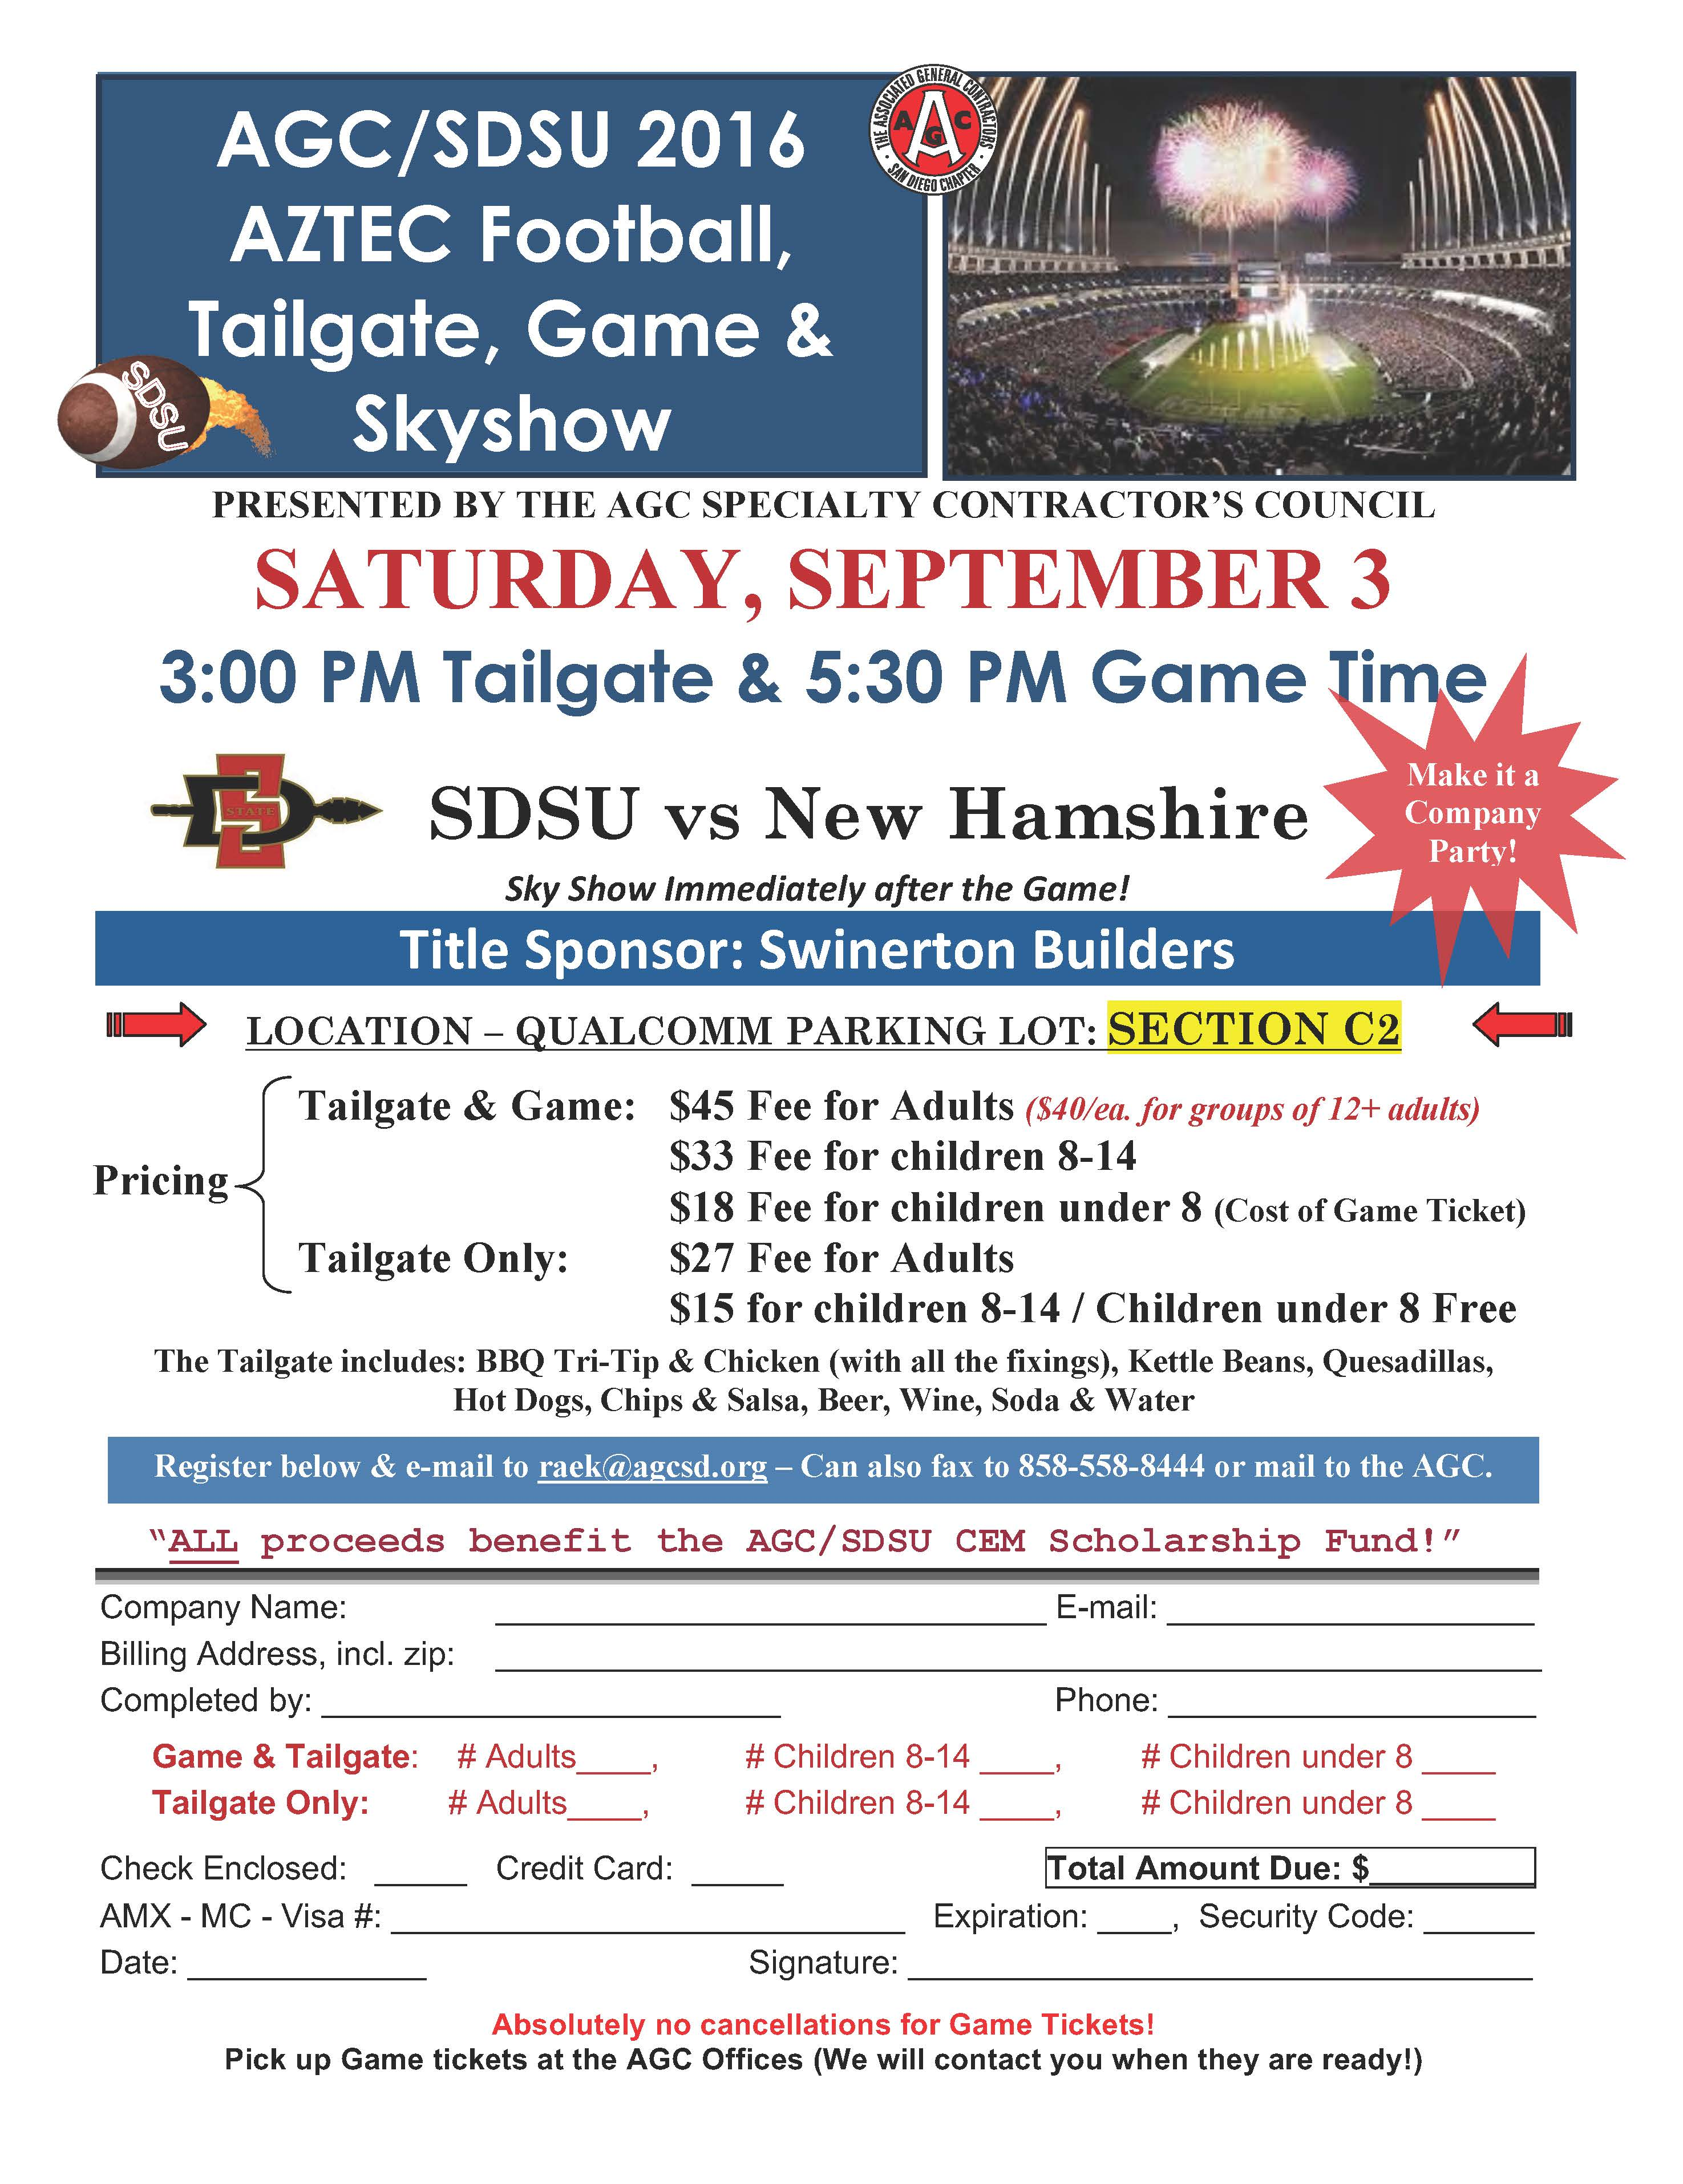 AGC Tailgate Registration form